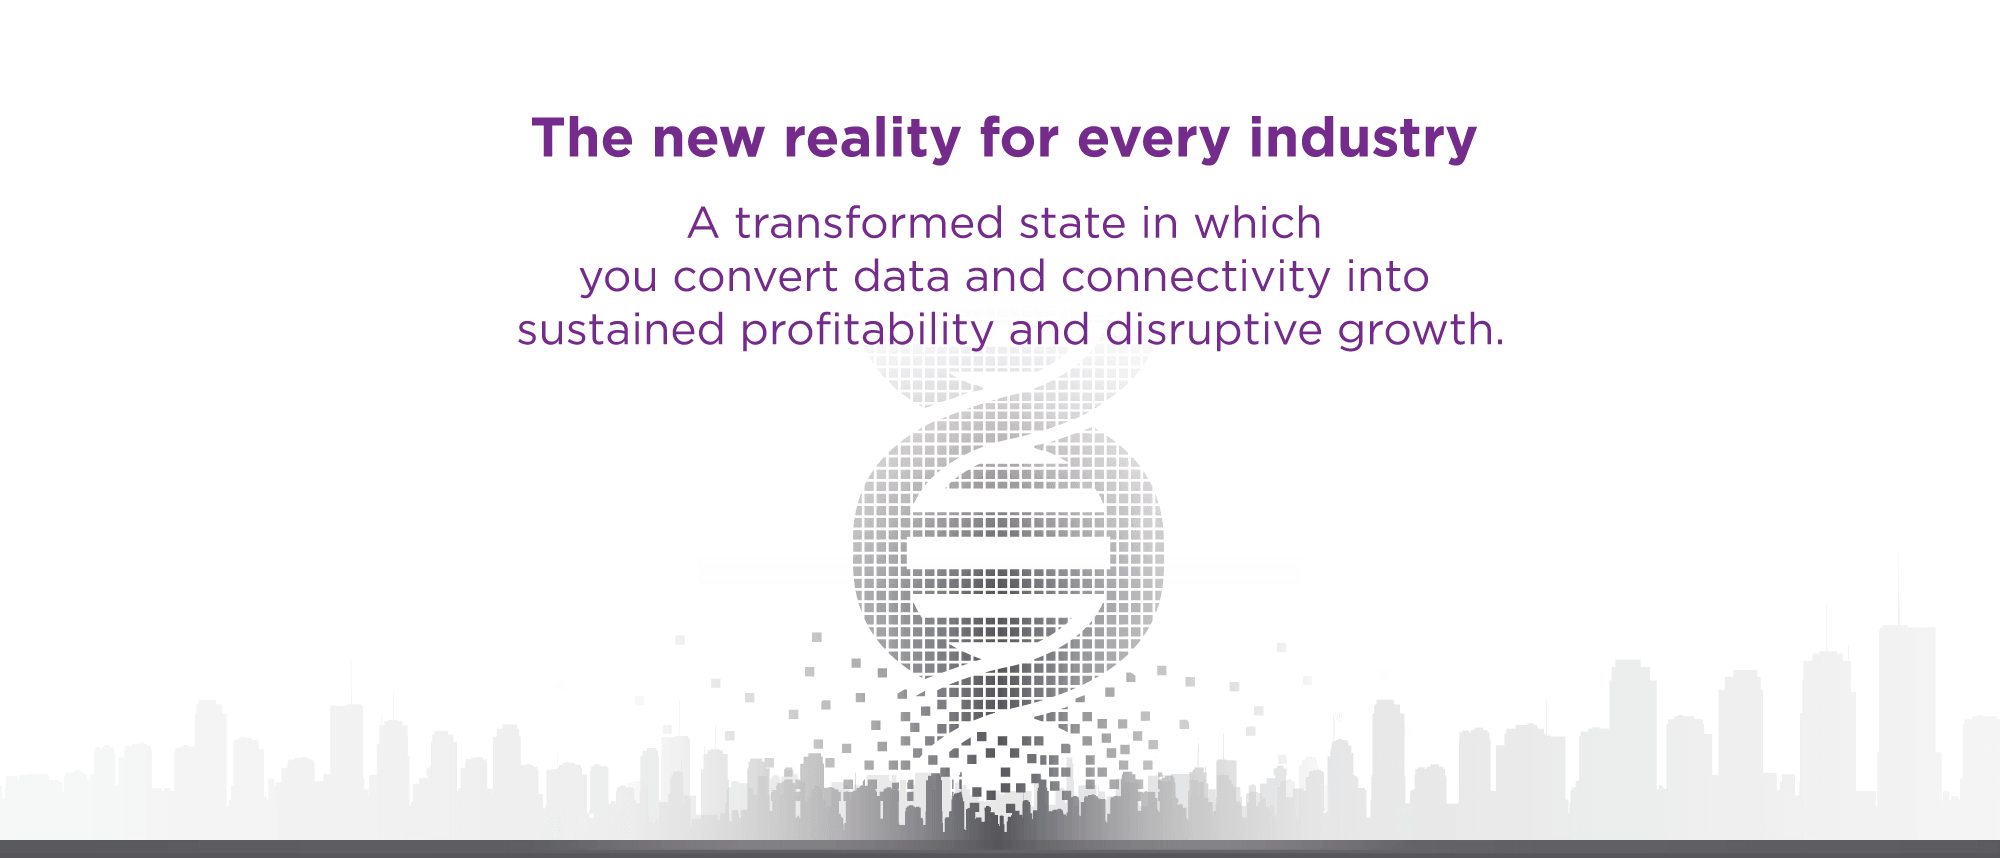 The new reality for every industry